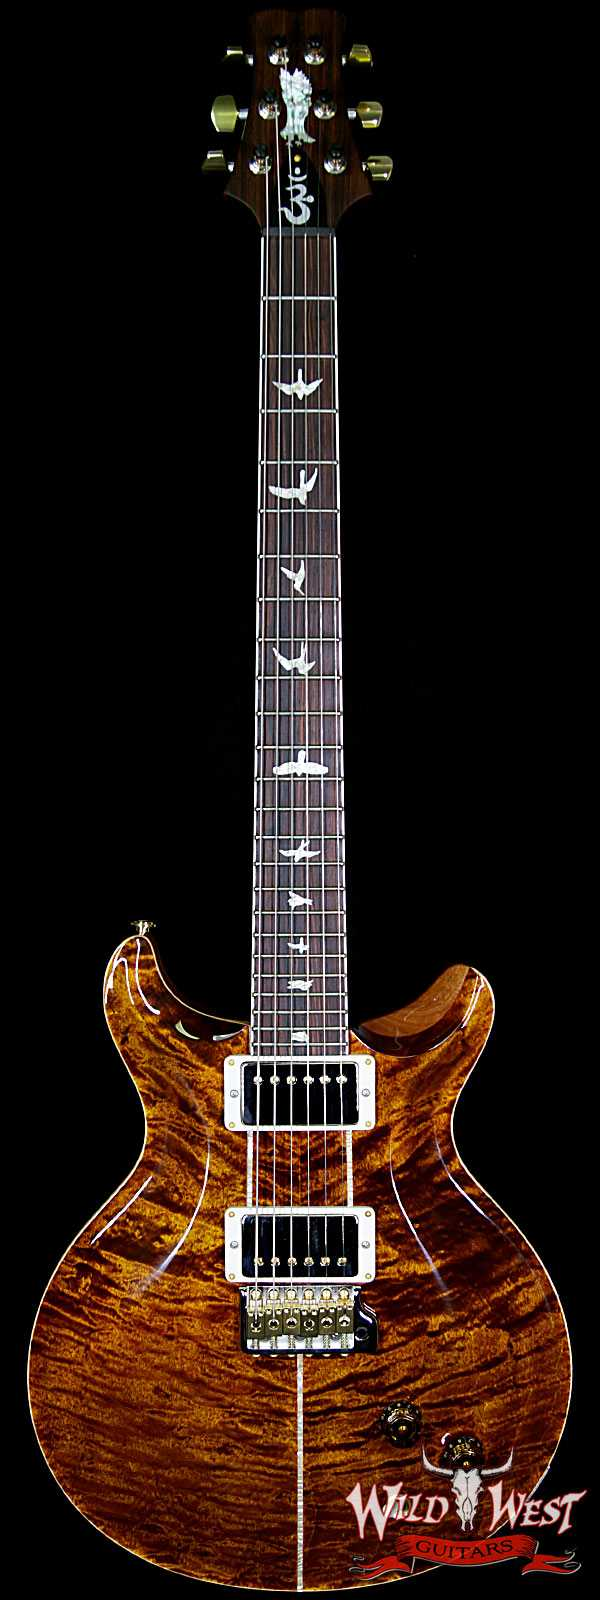 PRS Wood Library Quilt 10 Top Santana Retro Flame Mahogany Neck Cocobolo Board Yellow Tiger